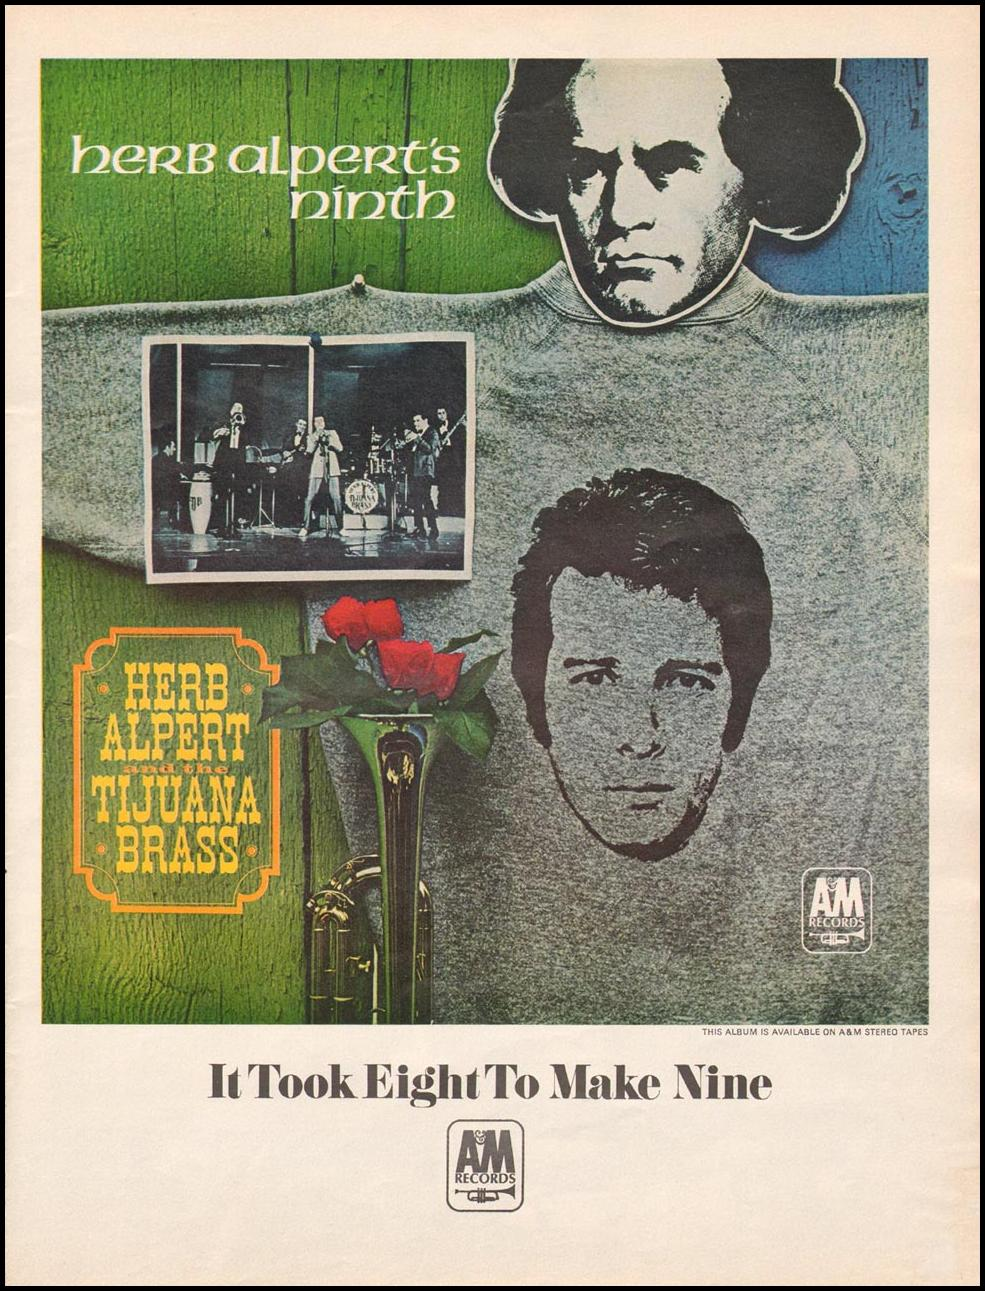 HERB ALPERT AND THE TIJUANA BRASS LIFE 12/22/1967 p. 39